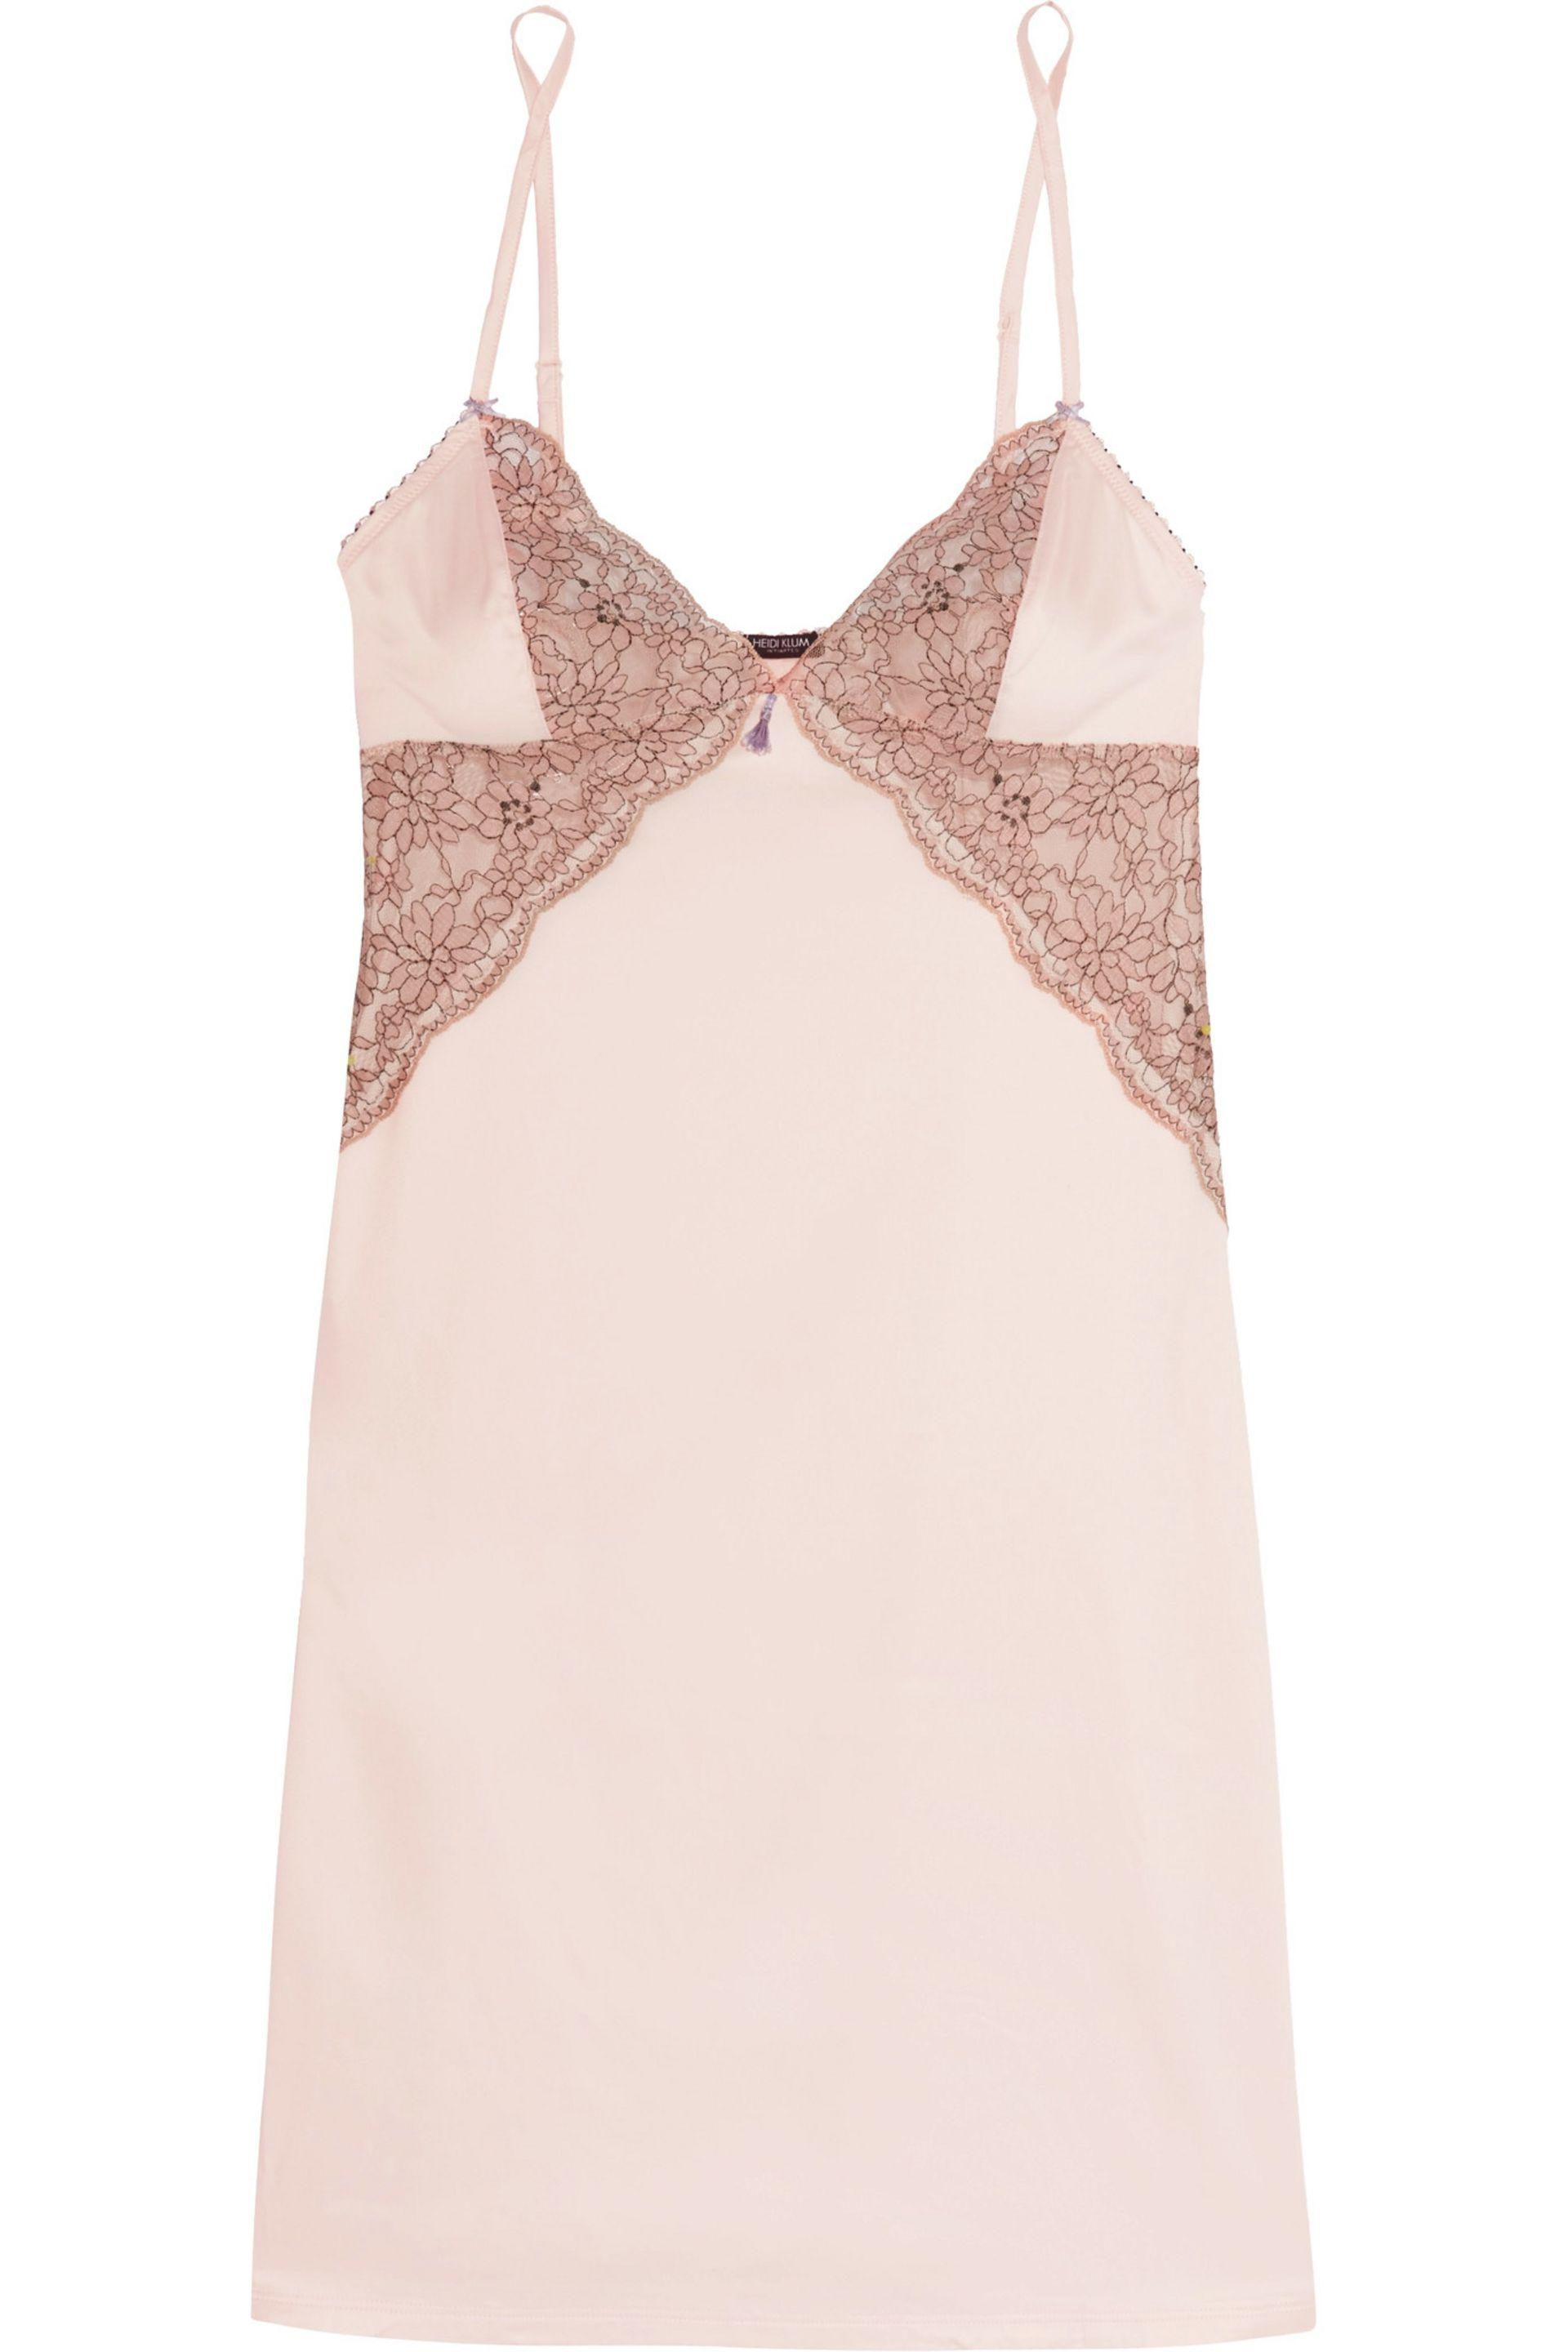 90ed80e14737 Lyst - Heidi Klum Venetian Embrace Corded Lace And Satin Chemise in Pink